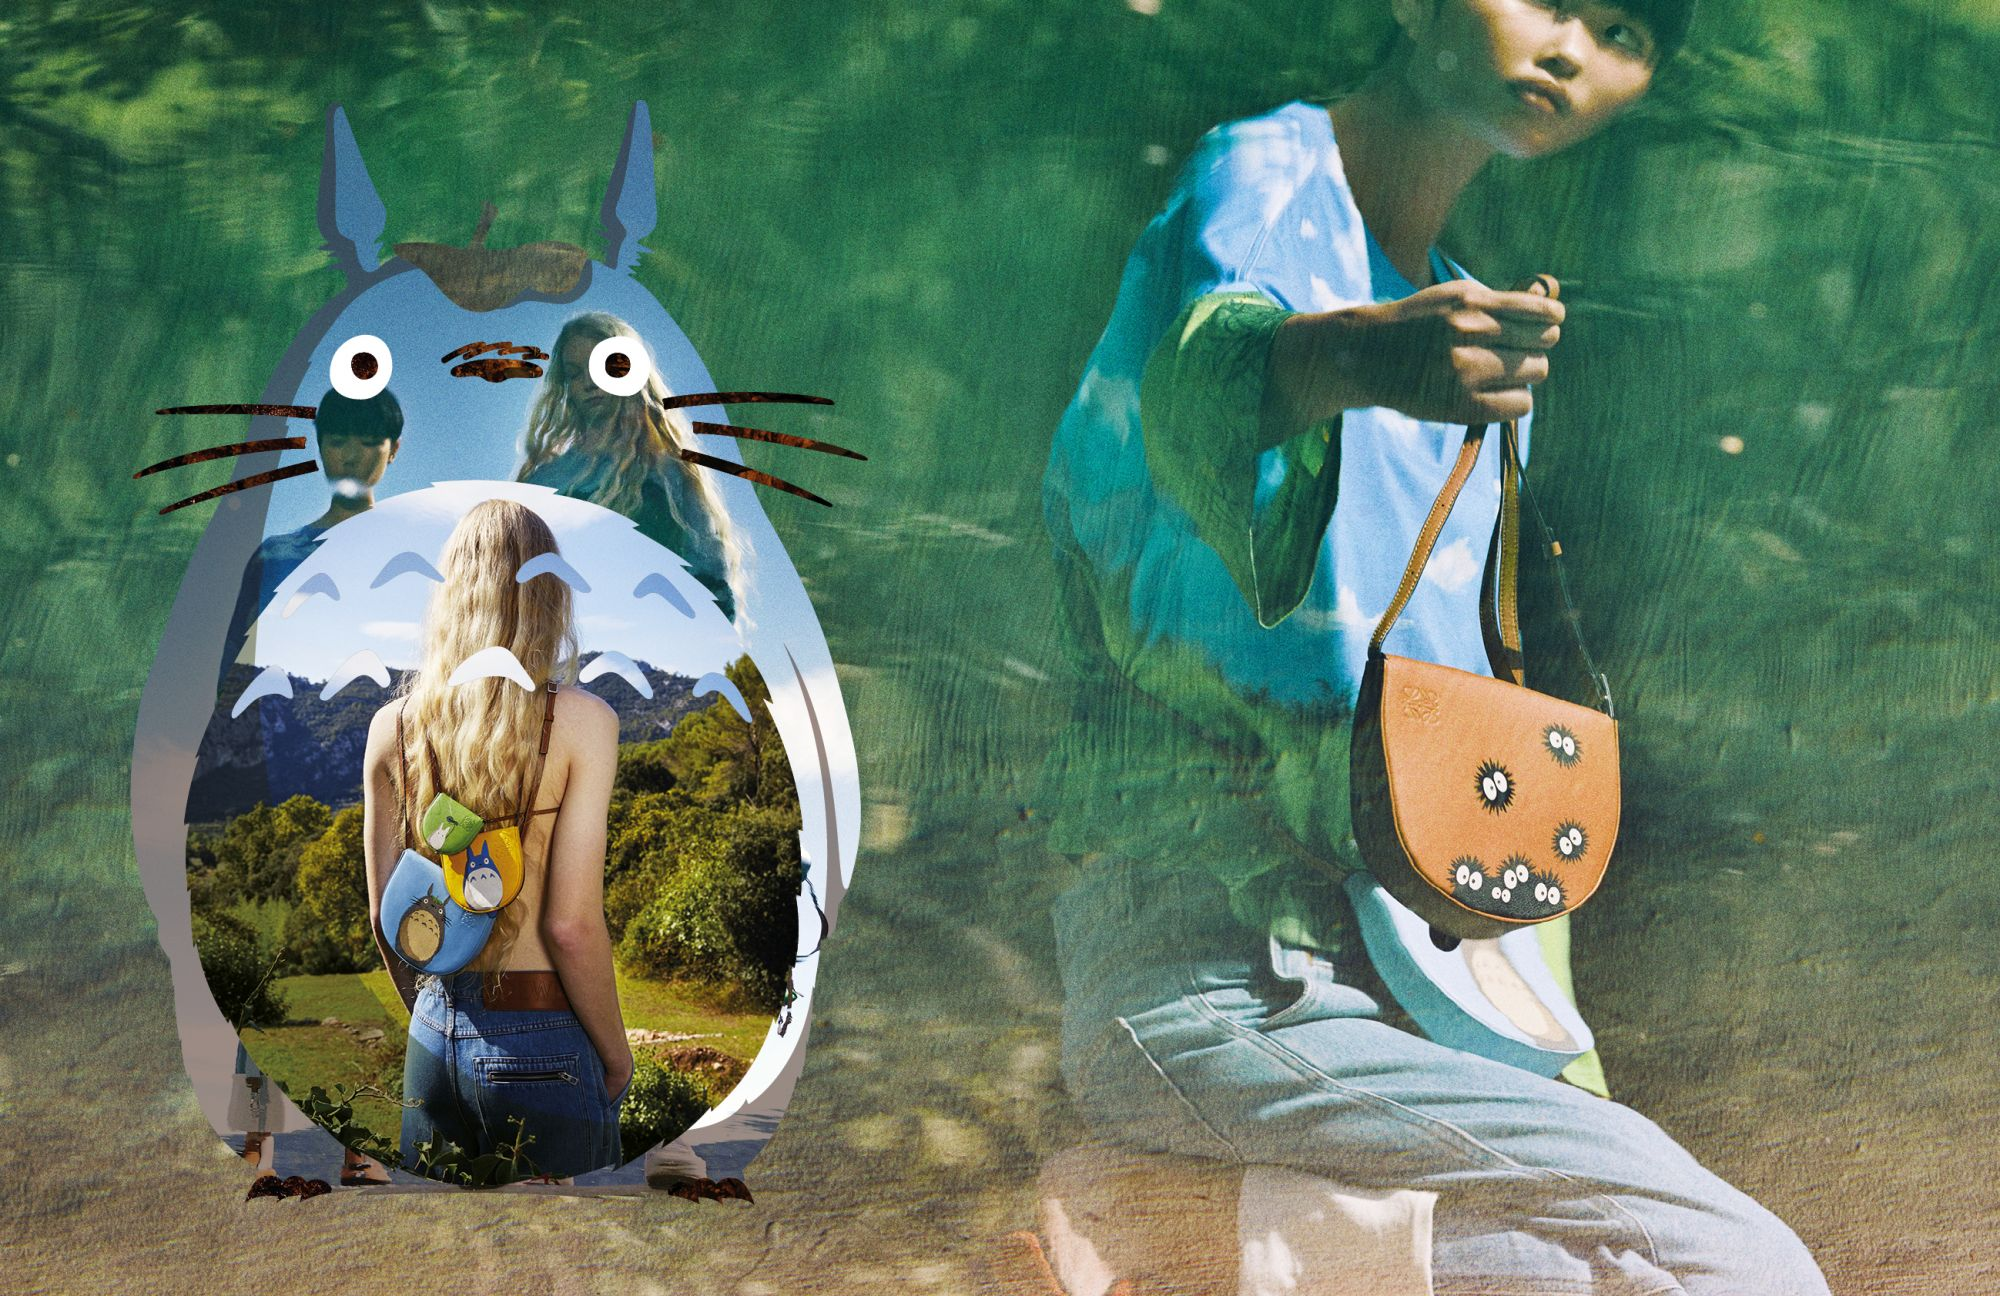 Why We're Excited About the Loewe x My Neighbor Totoro Collection Launching on January 8 in Singapore